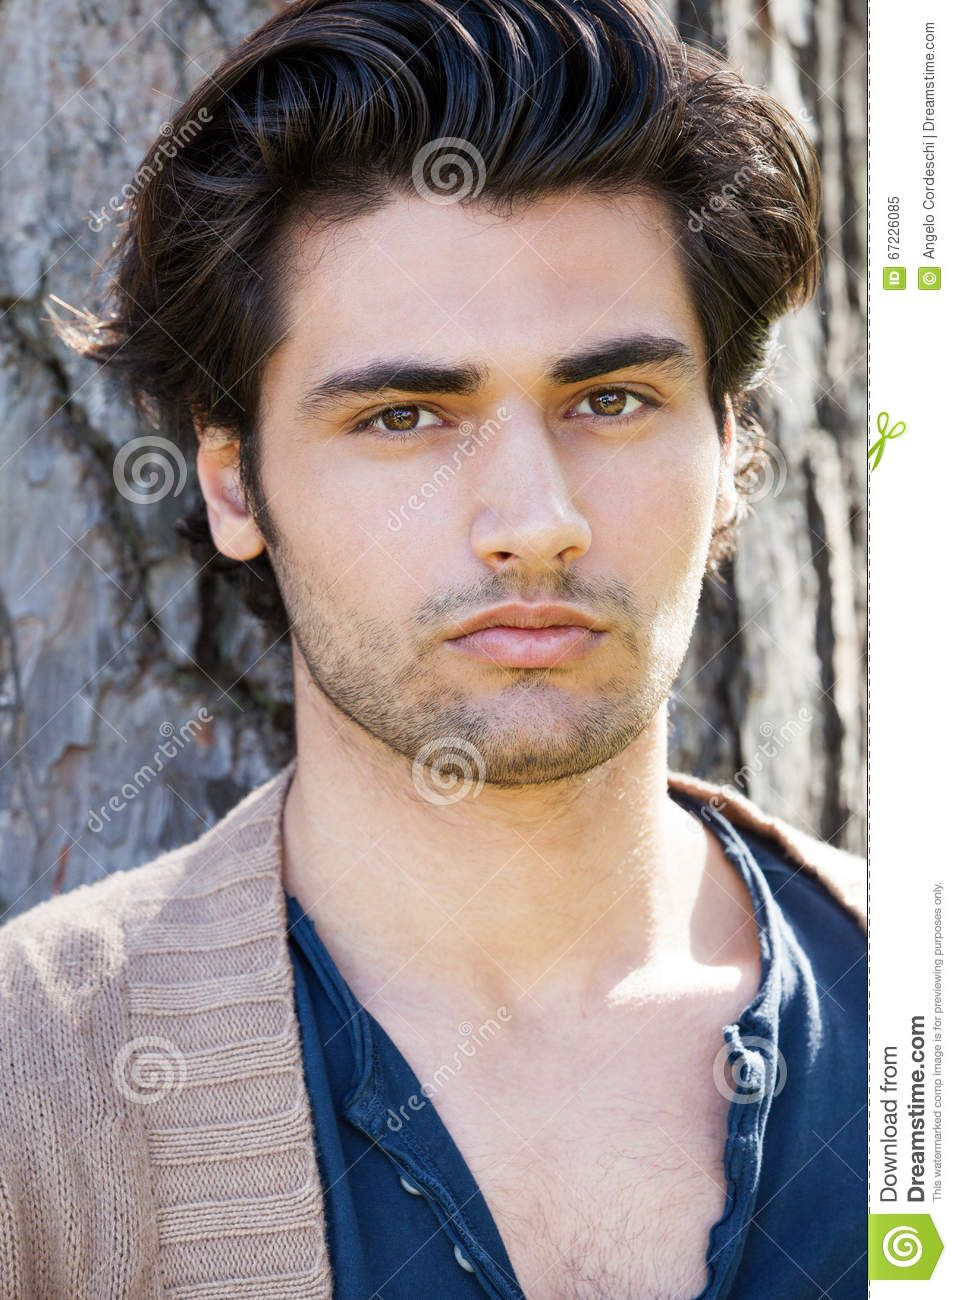 Handsome Young Italian Man Portrait Stylish Hair Male Hairstyle